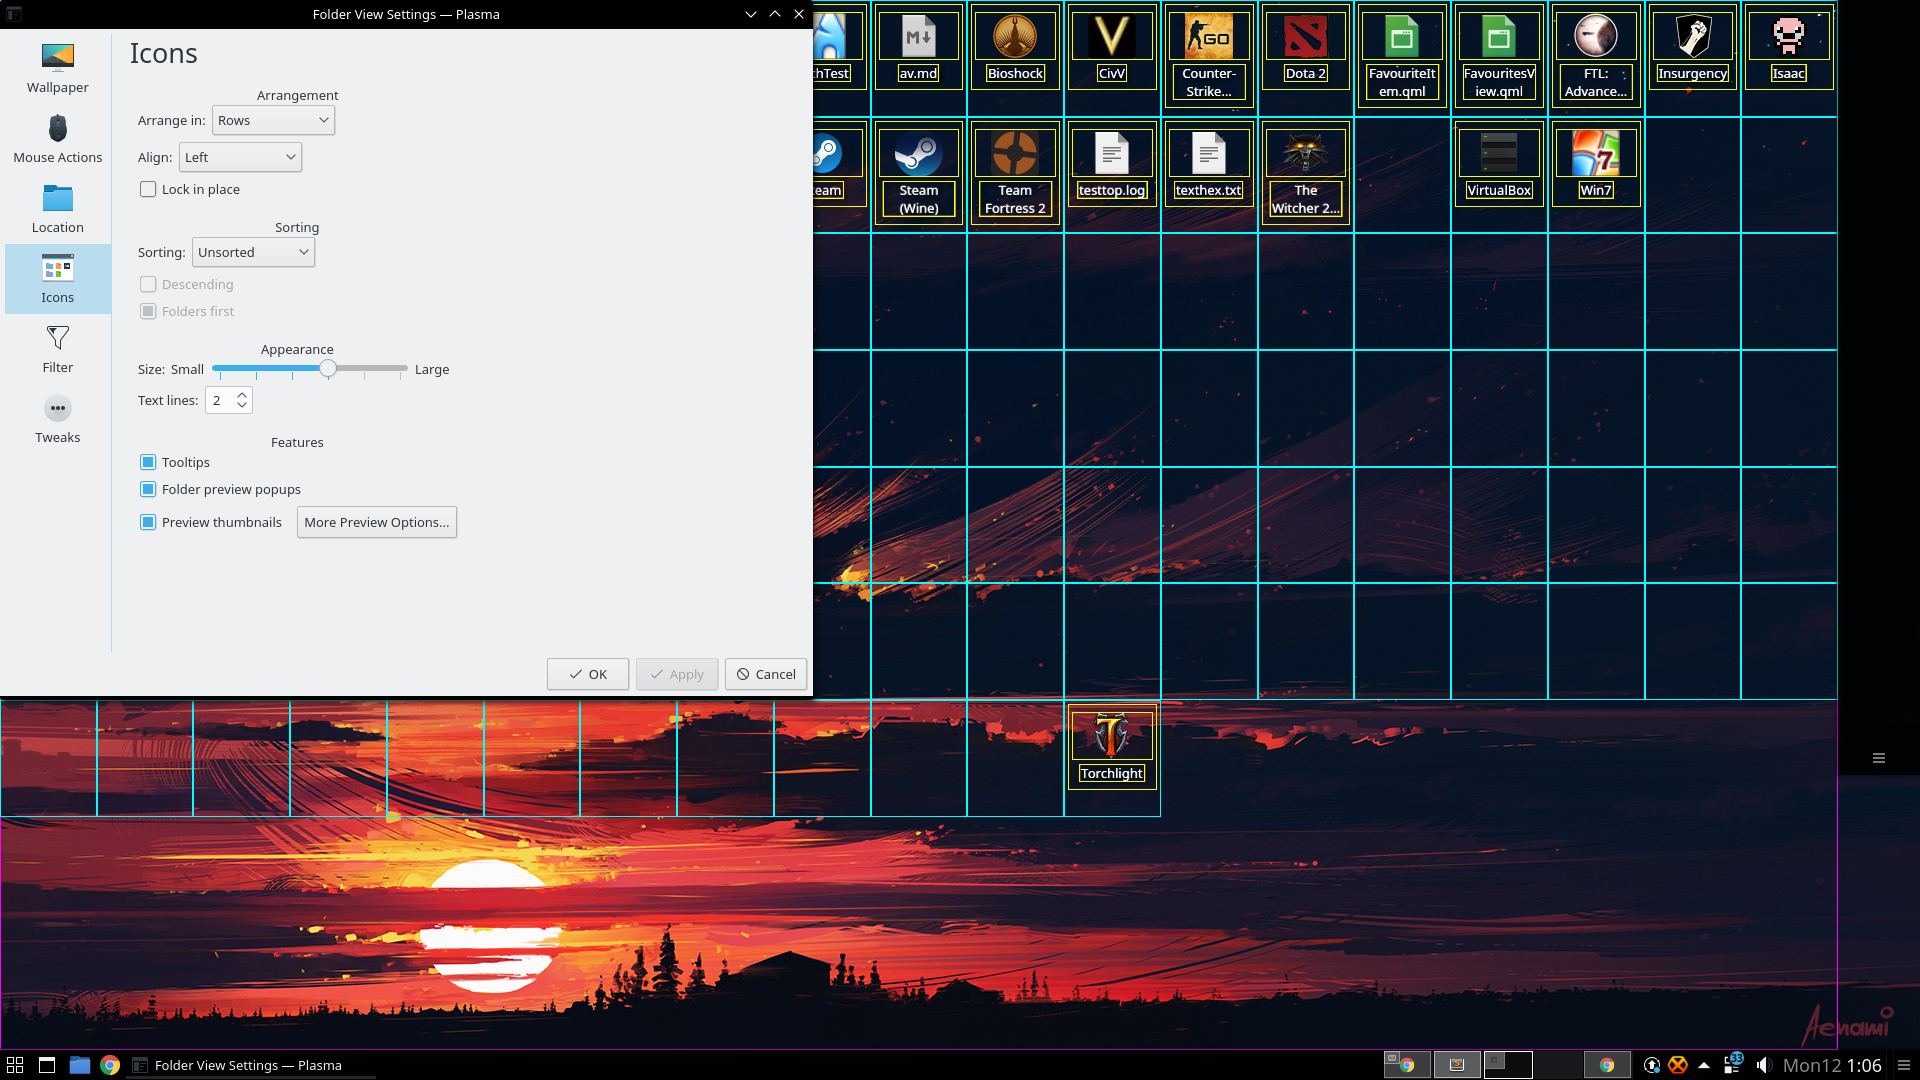 ⚙ D6188 [Desktop] Pad cellWidth/cellHeight with the extra space